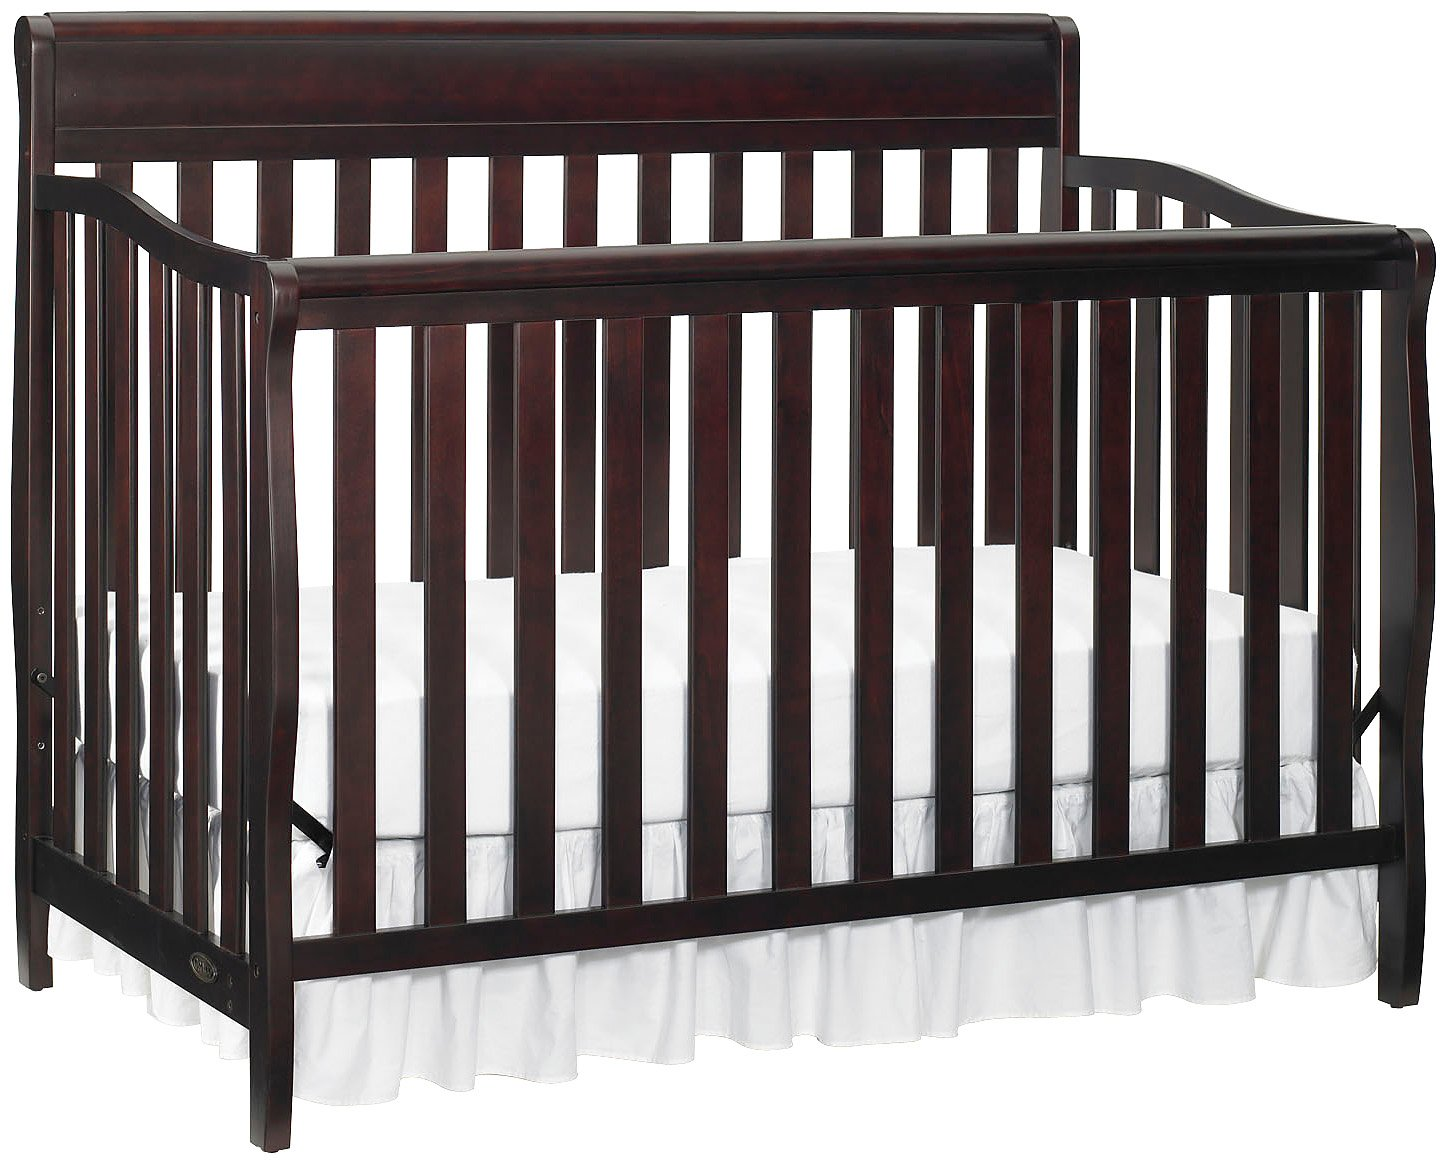 Stork Craft Tuscany 4 In 1 Stages Crib Baby Gear And